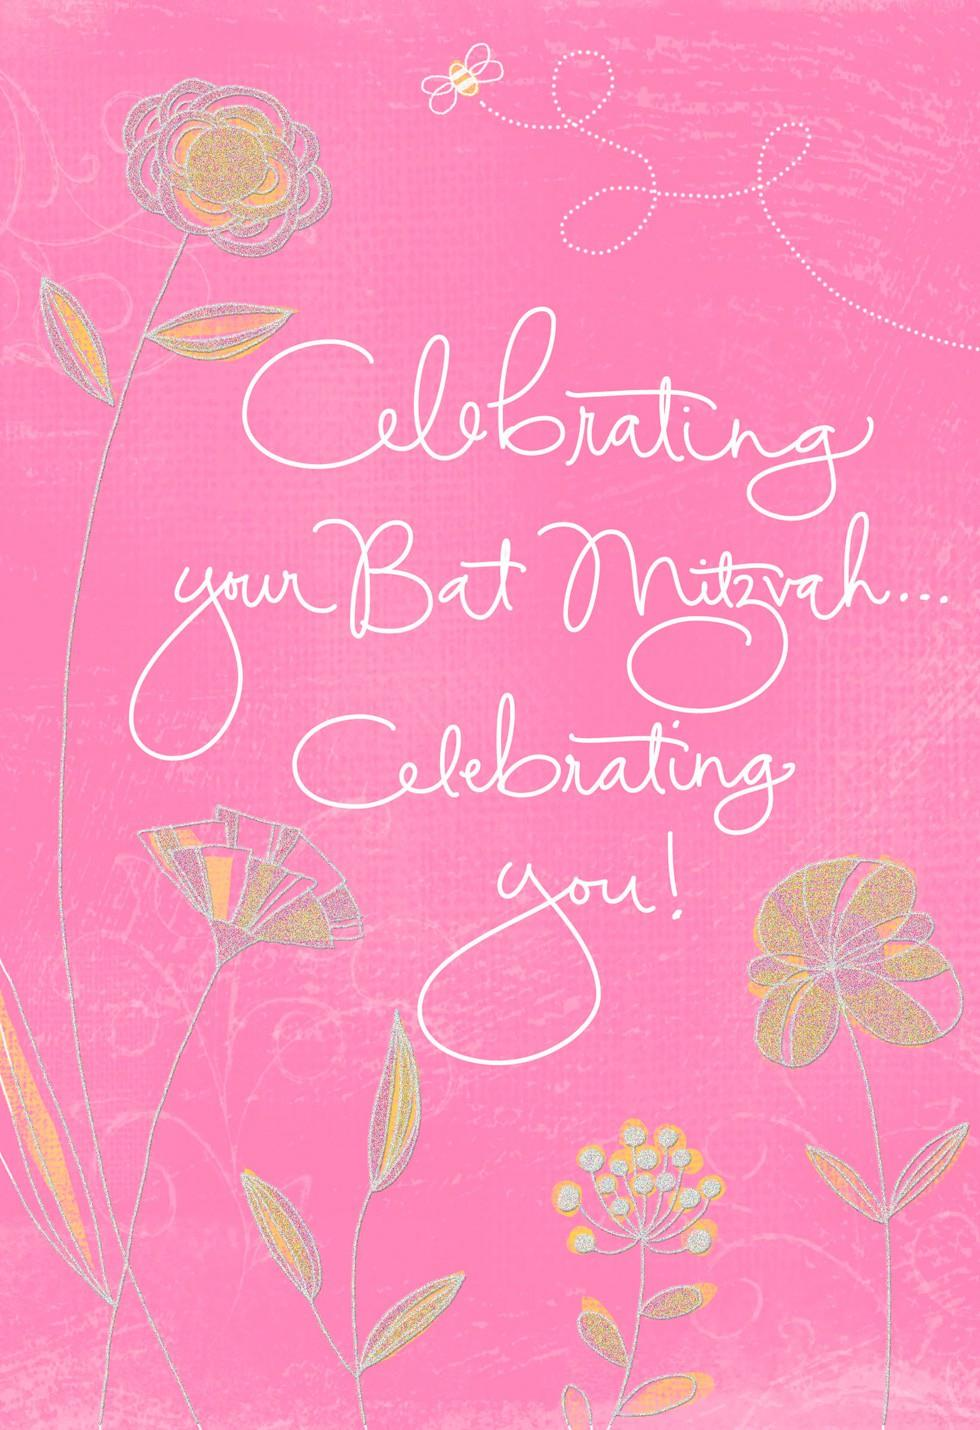 Pink flowers bat mitzvah congratulations card greeting Hallmark flowers